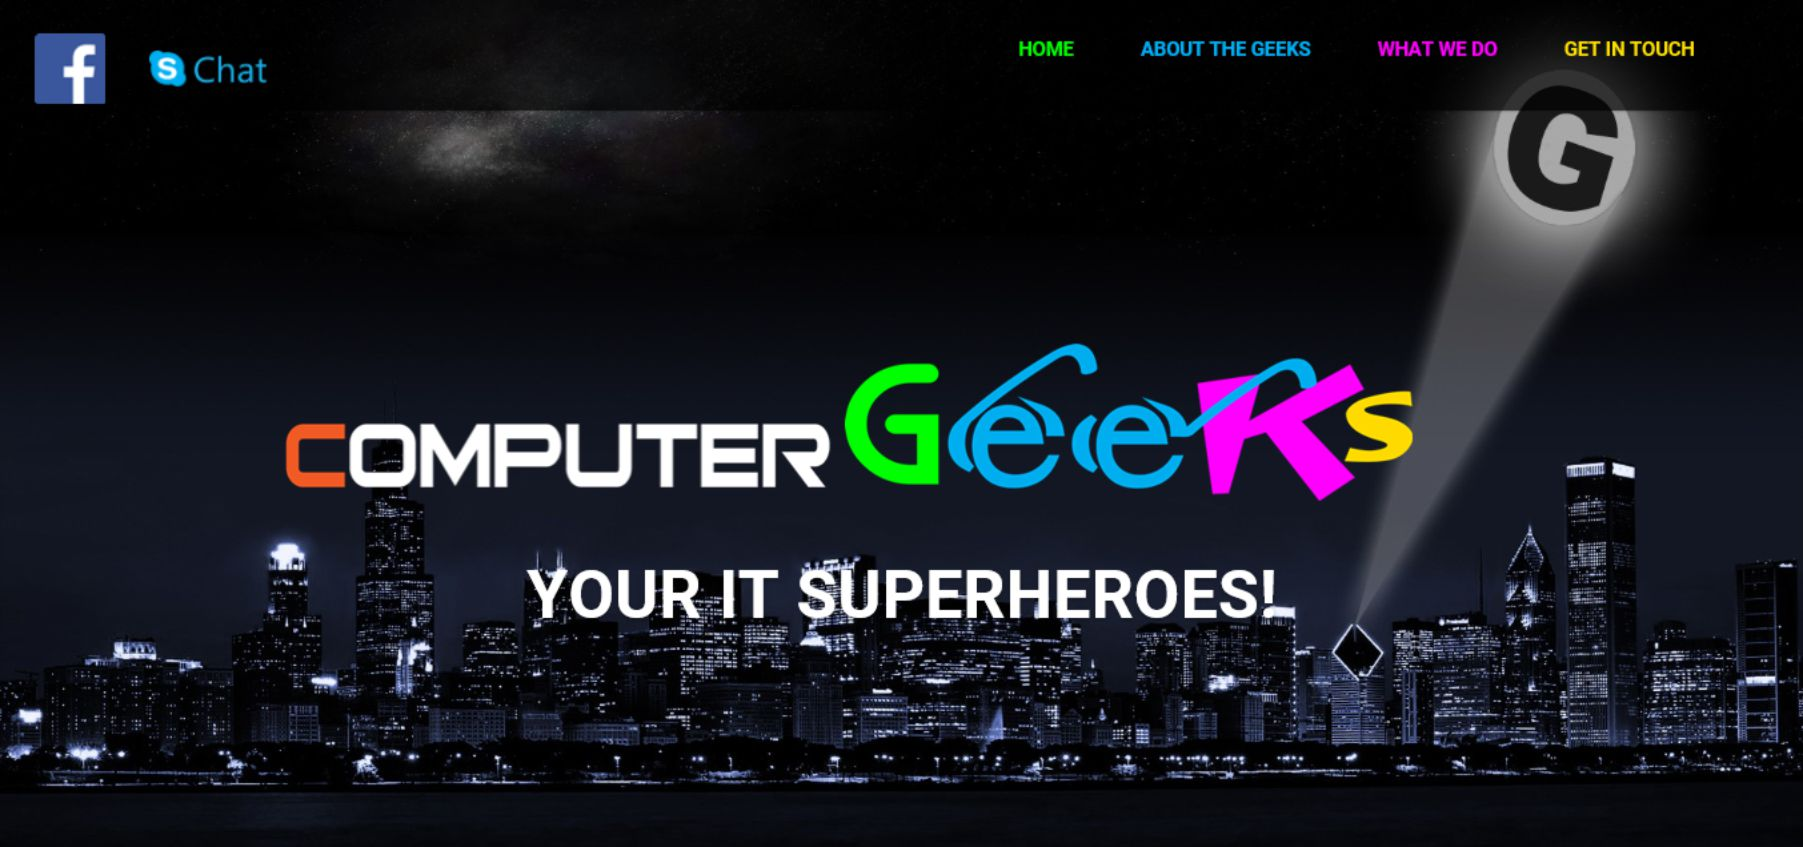 Computer Geeks - www.computergeeks.co.za